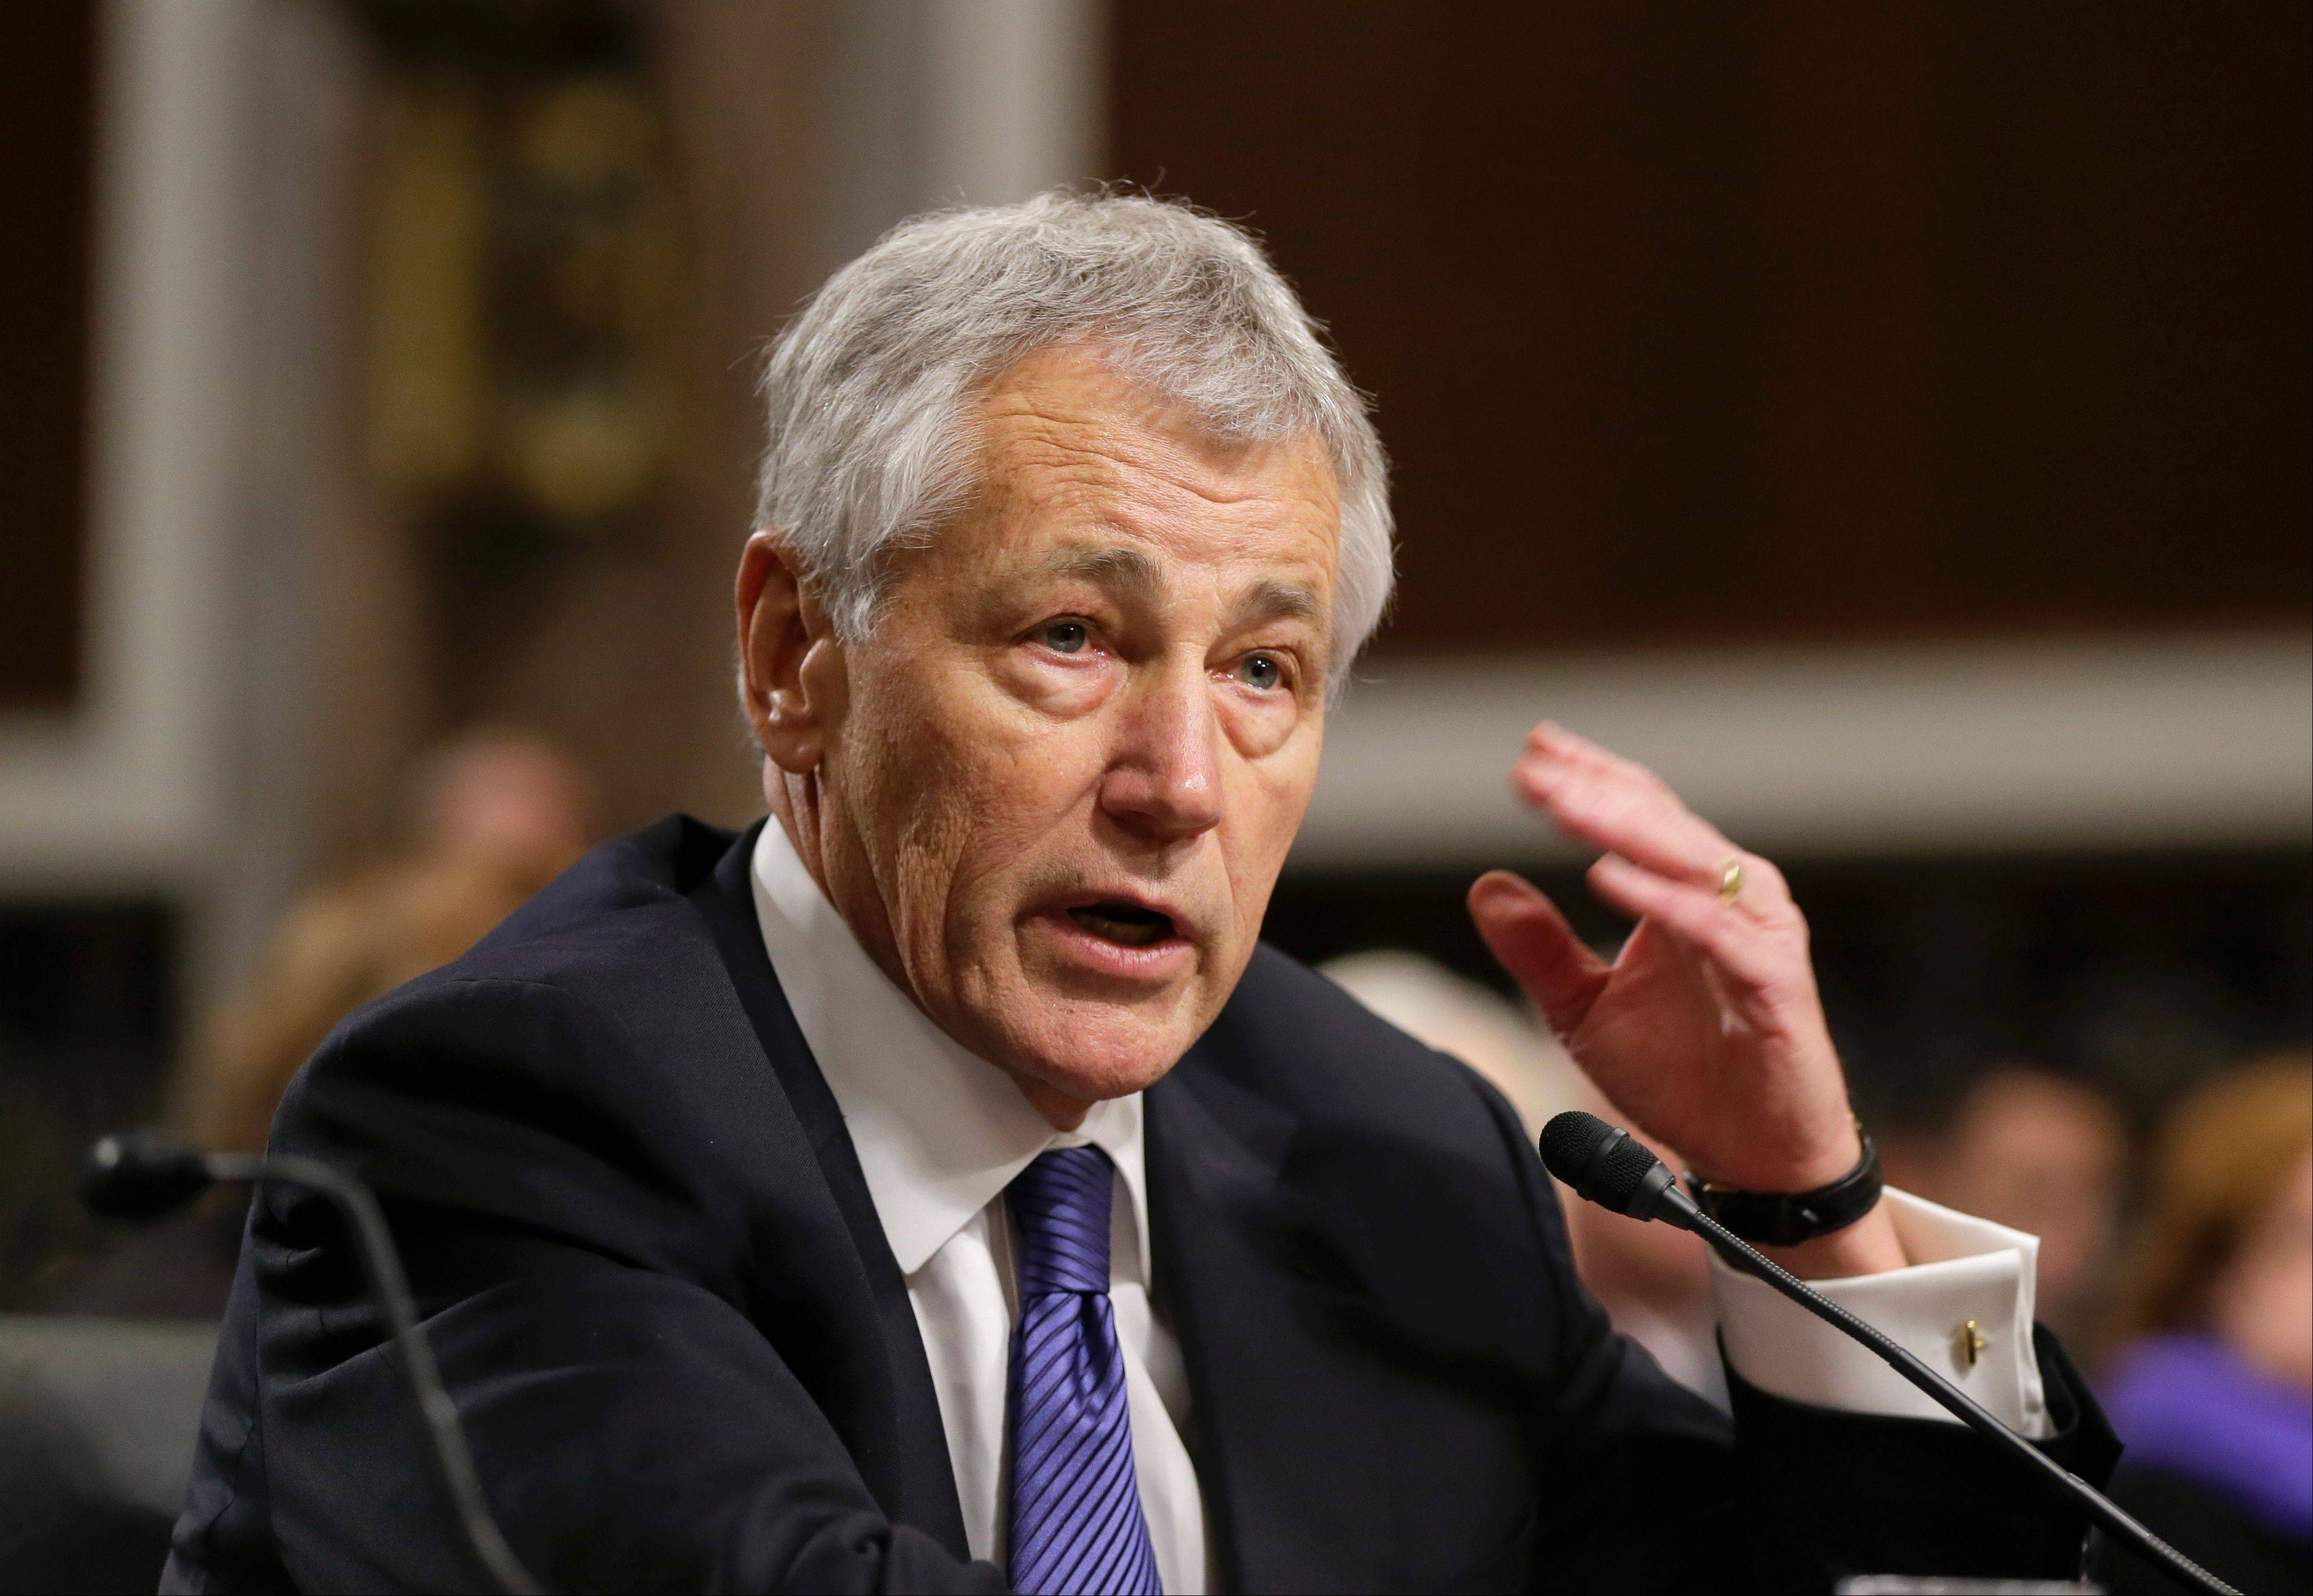 Chuck Hagel is expected to be sworn in as secretary of defense Wednesday and is likely to address the staff in his first day as defense secretary.